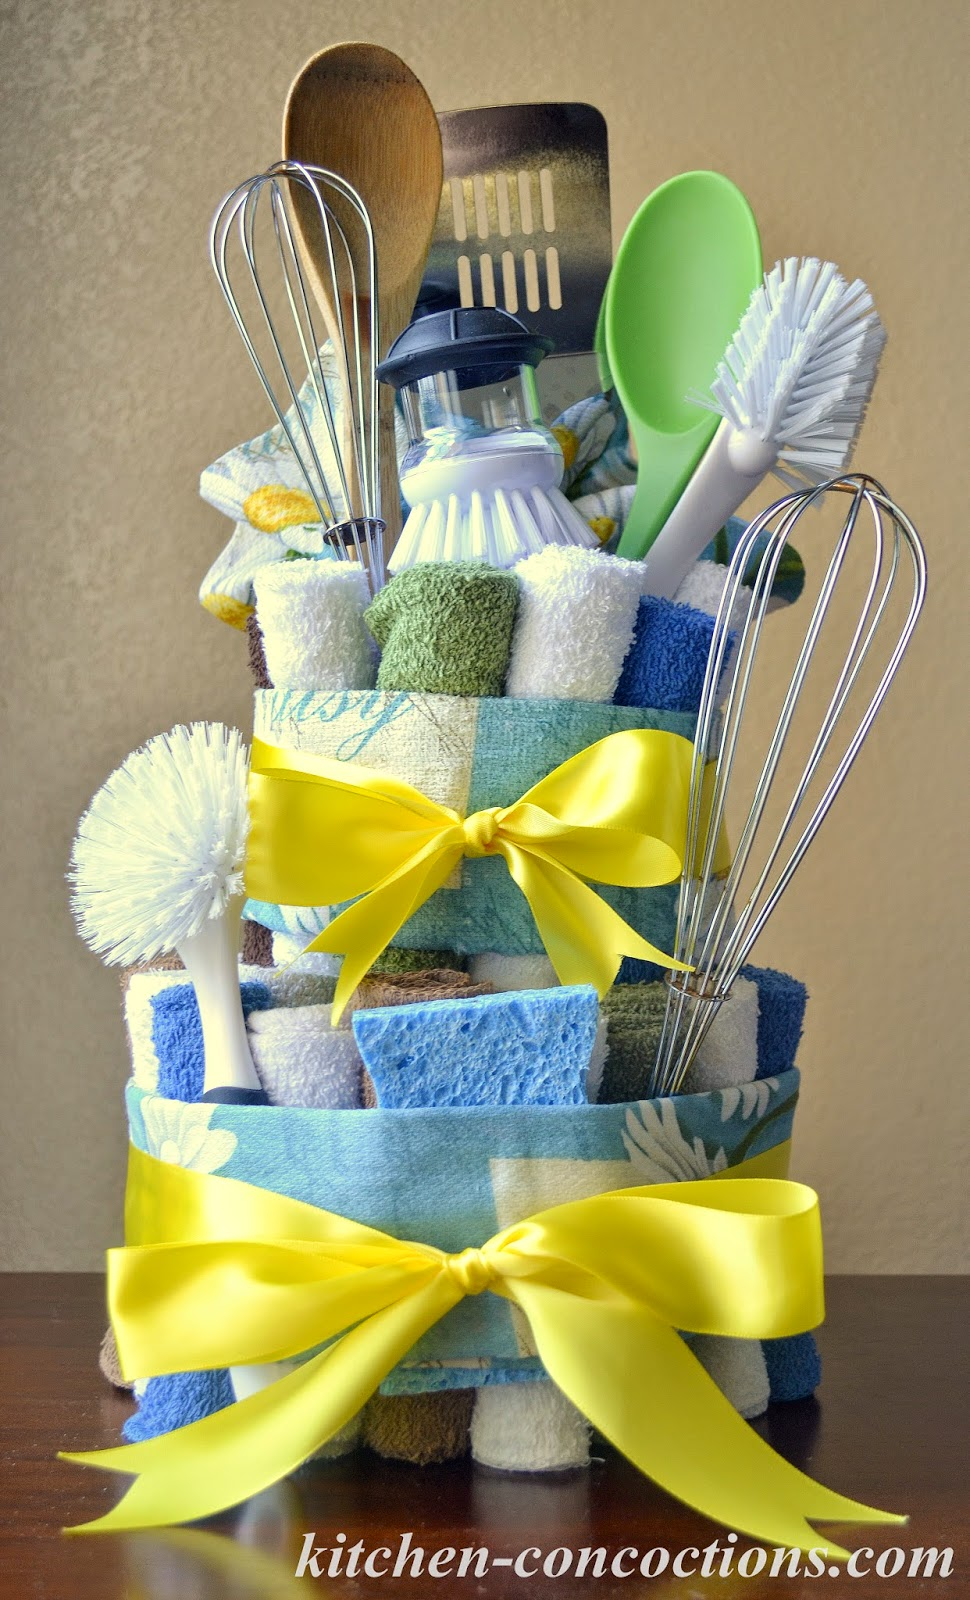 Dish Towel Cake Step By Step Tutorial By Heather H Of Kitchen Concoctions Www Kitchen Concoctions Com Printable Version